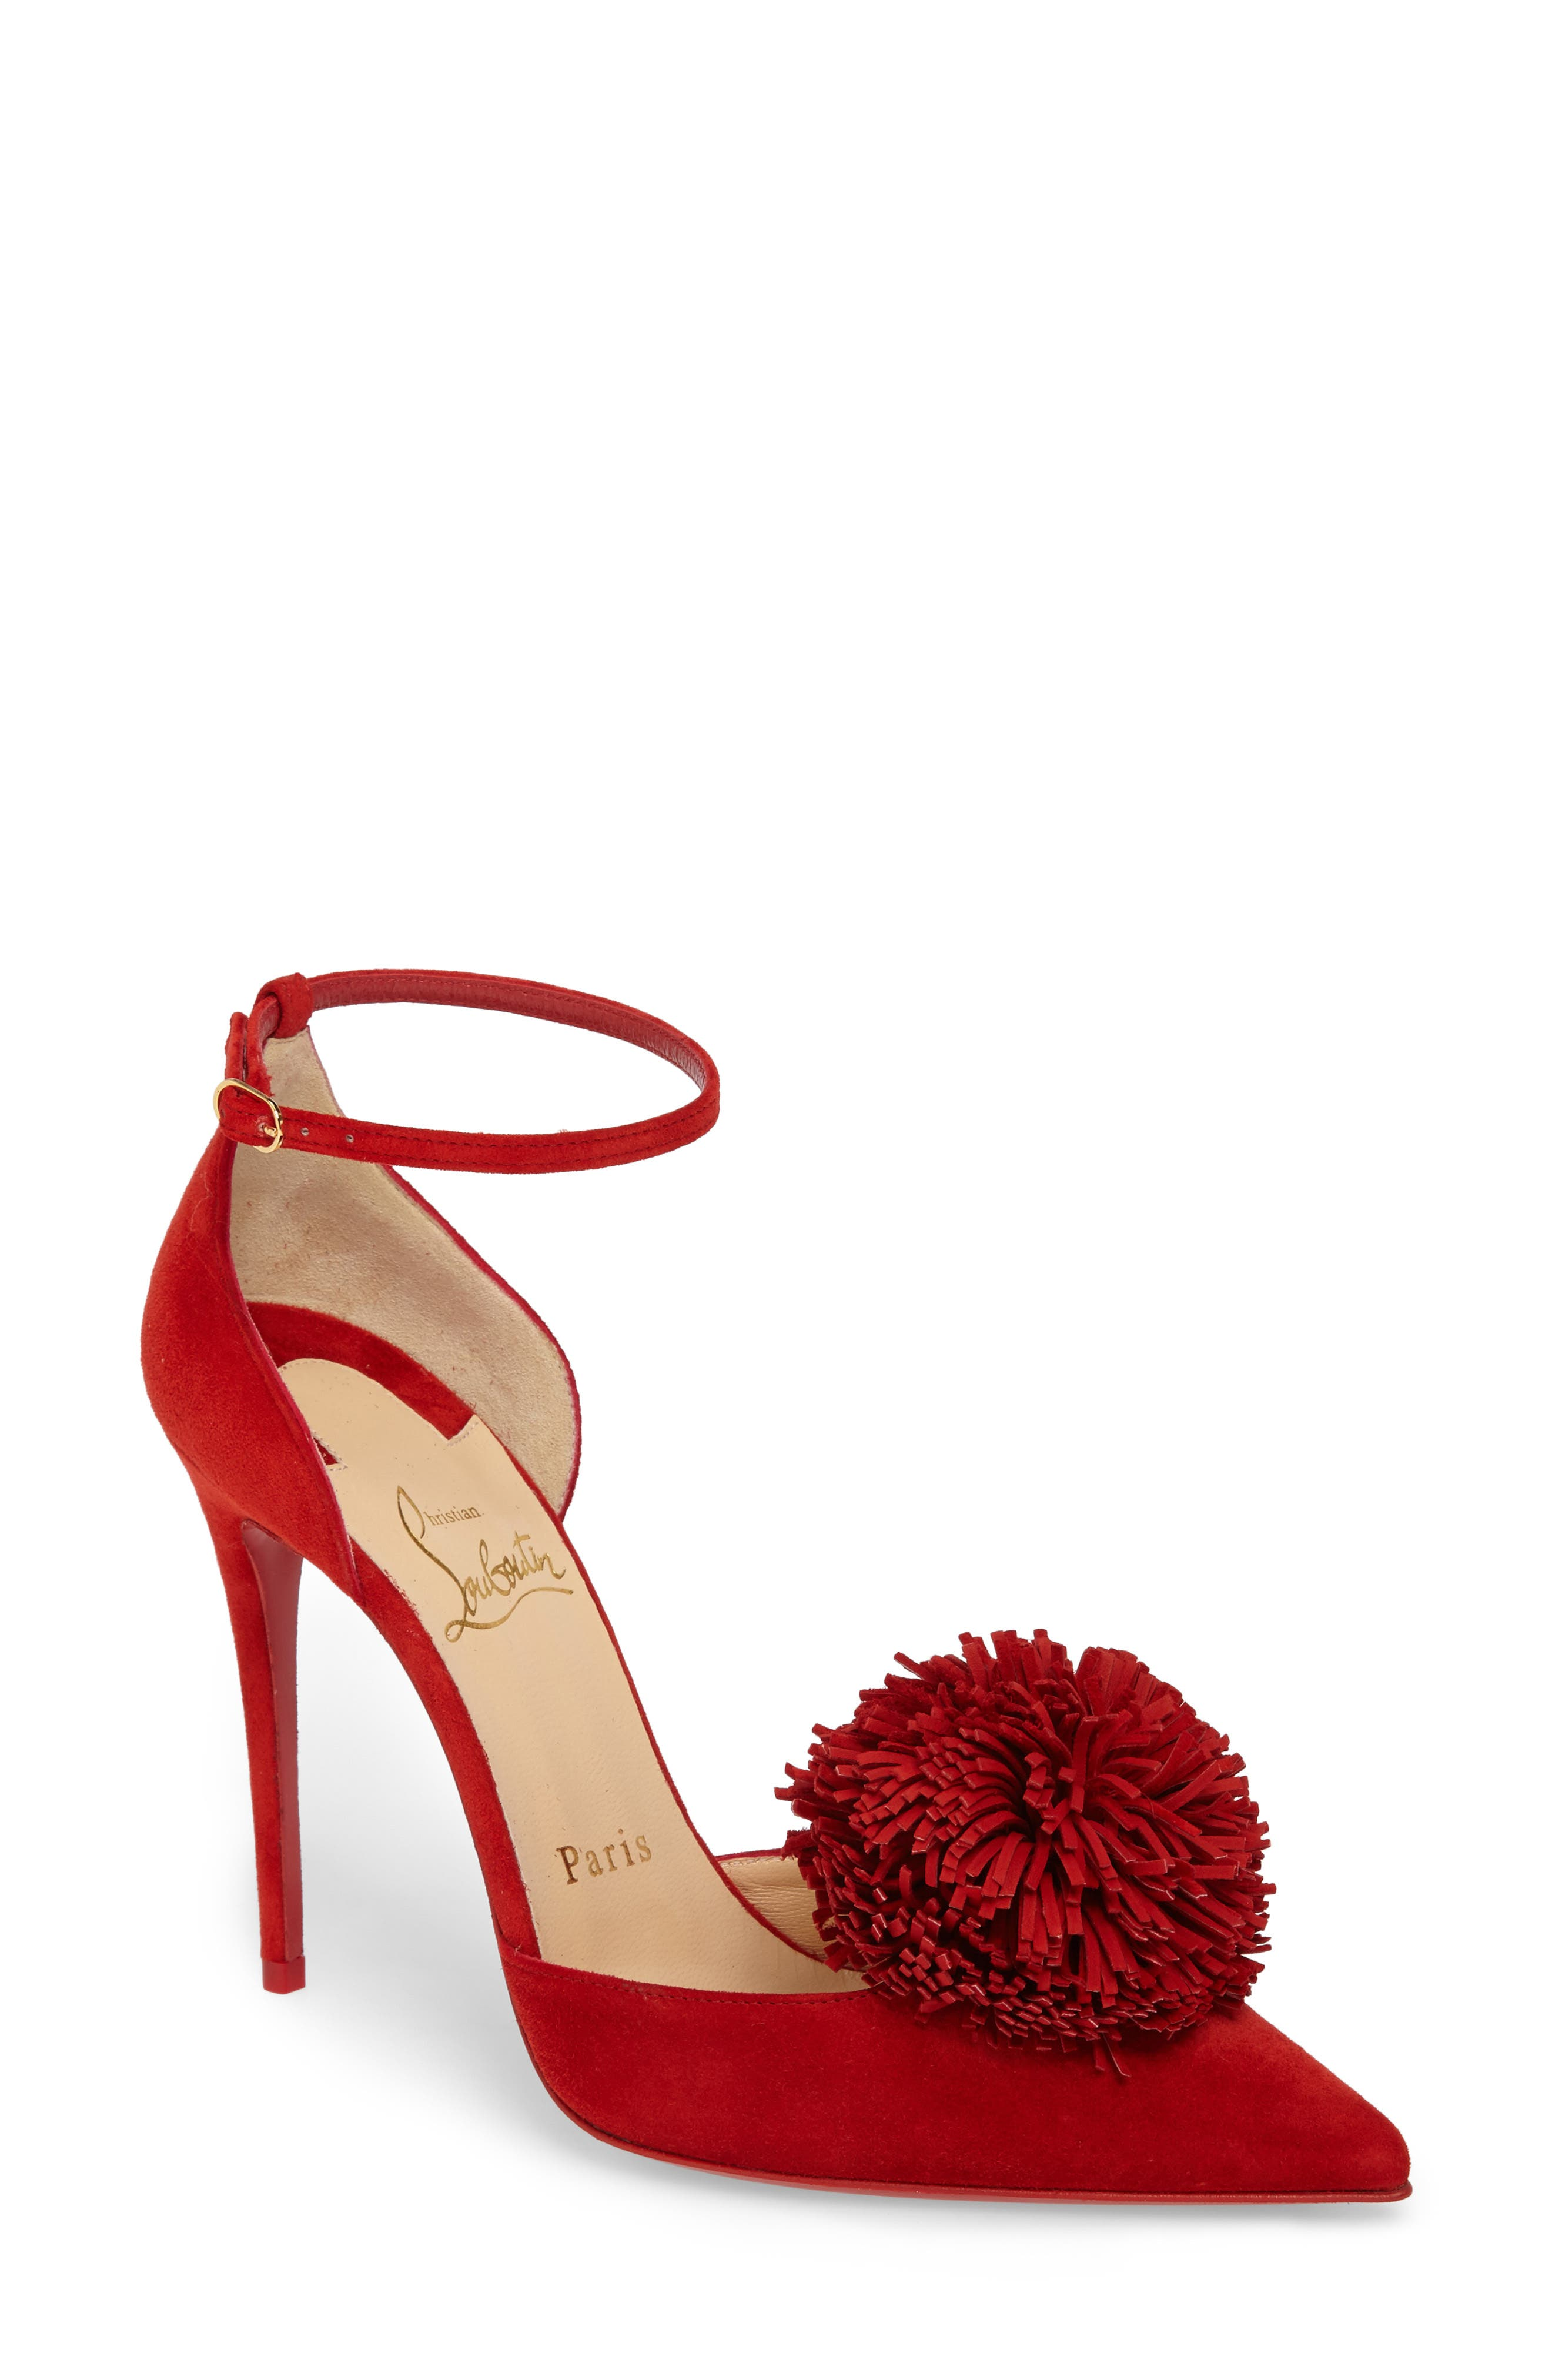 Alternate Image 1 Selected - Christian Louboutin Tsarou Pom Ankle Strap Pump (Women)